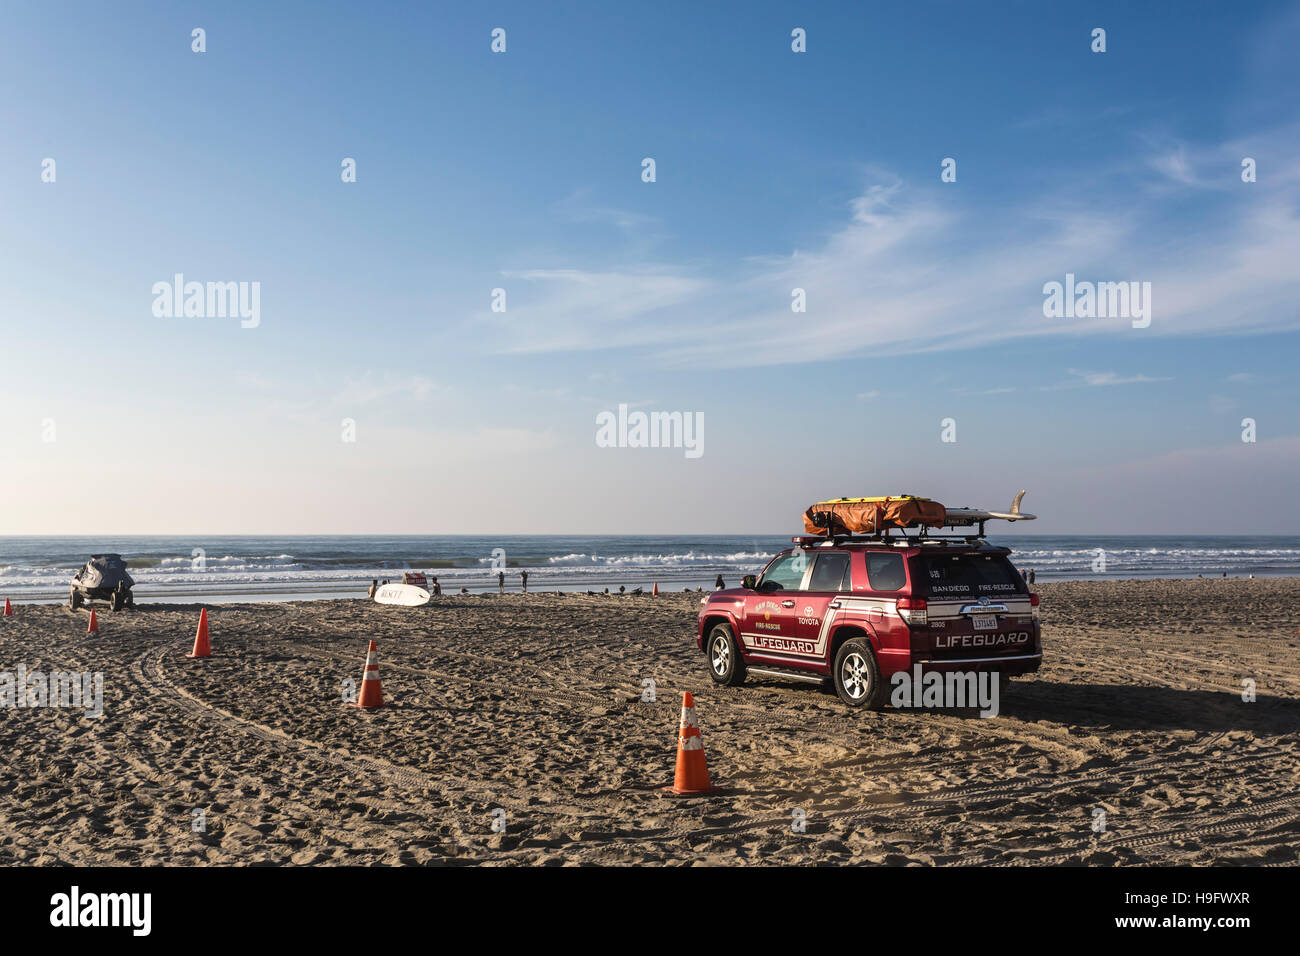 lifeguard truck and watercraft on mission beach in san diego ca - Stock Image